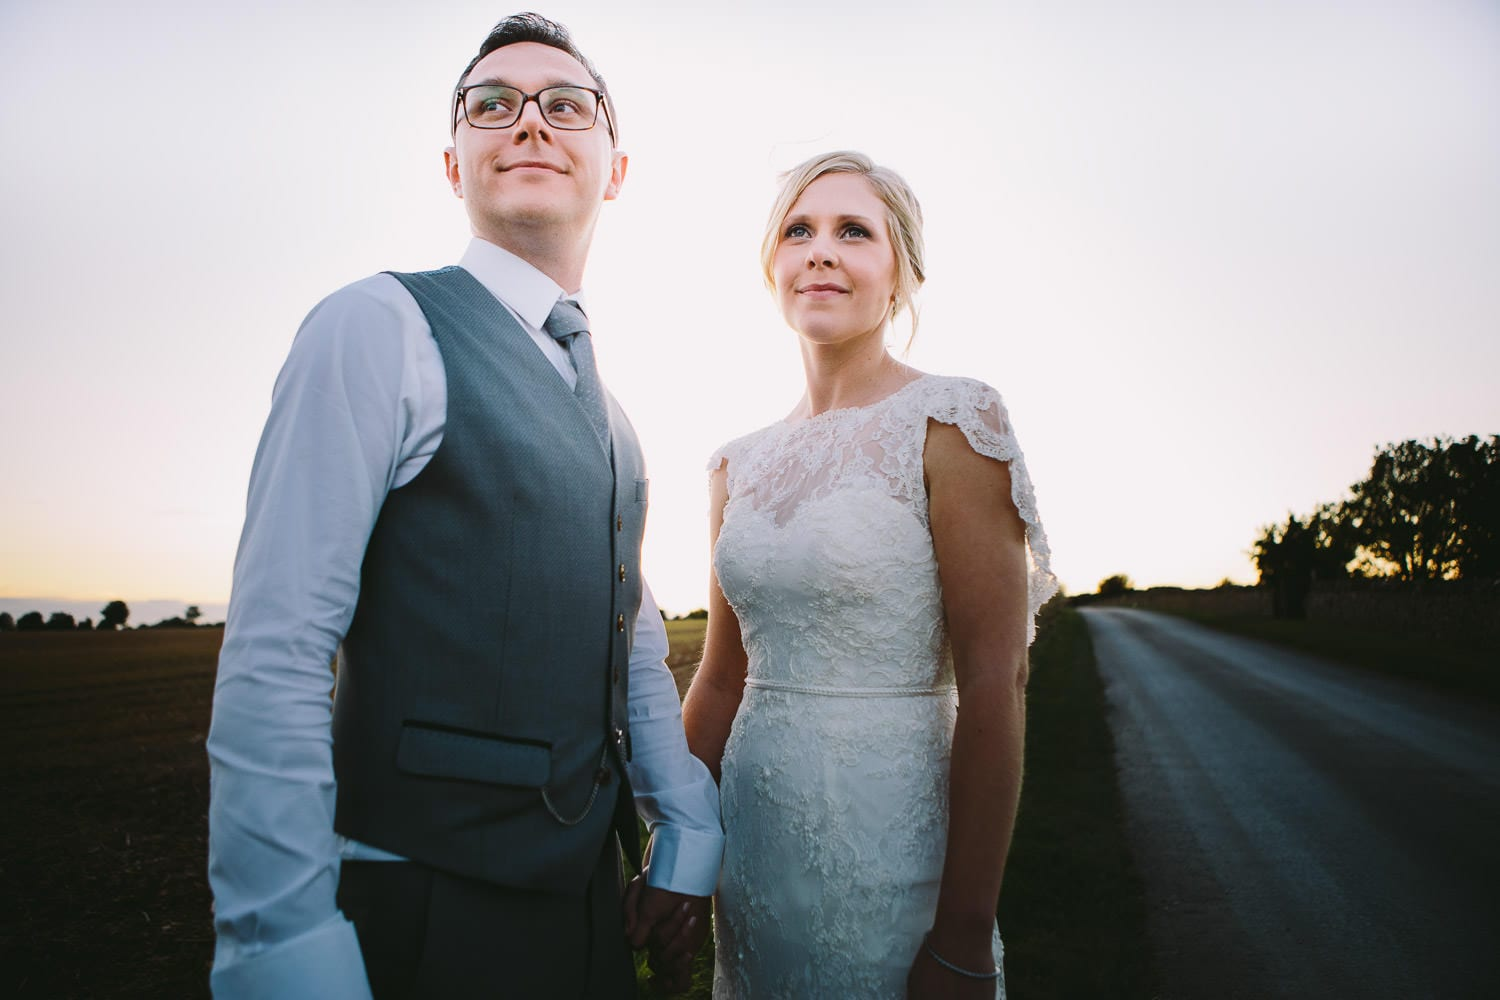 The bride and groom standing in the Cotswolds countryside